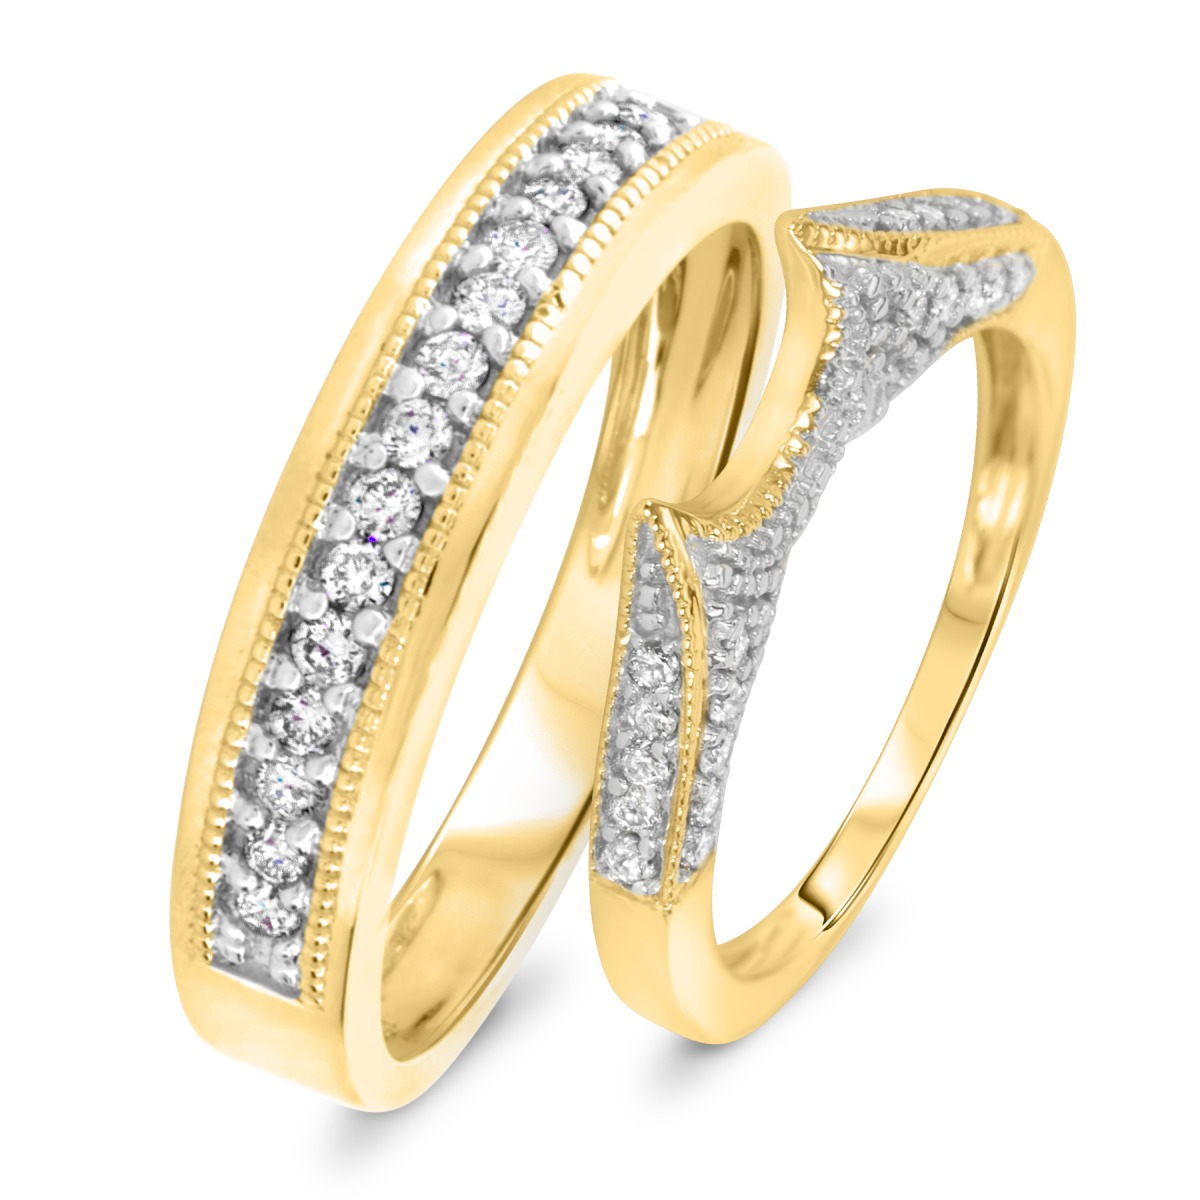 1 2 CT TW Diamond His And Hers Wedding Rings 14K Yellow Gold